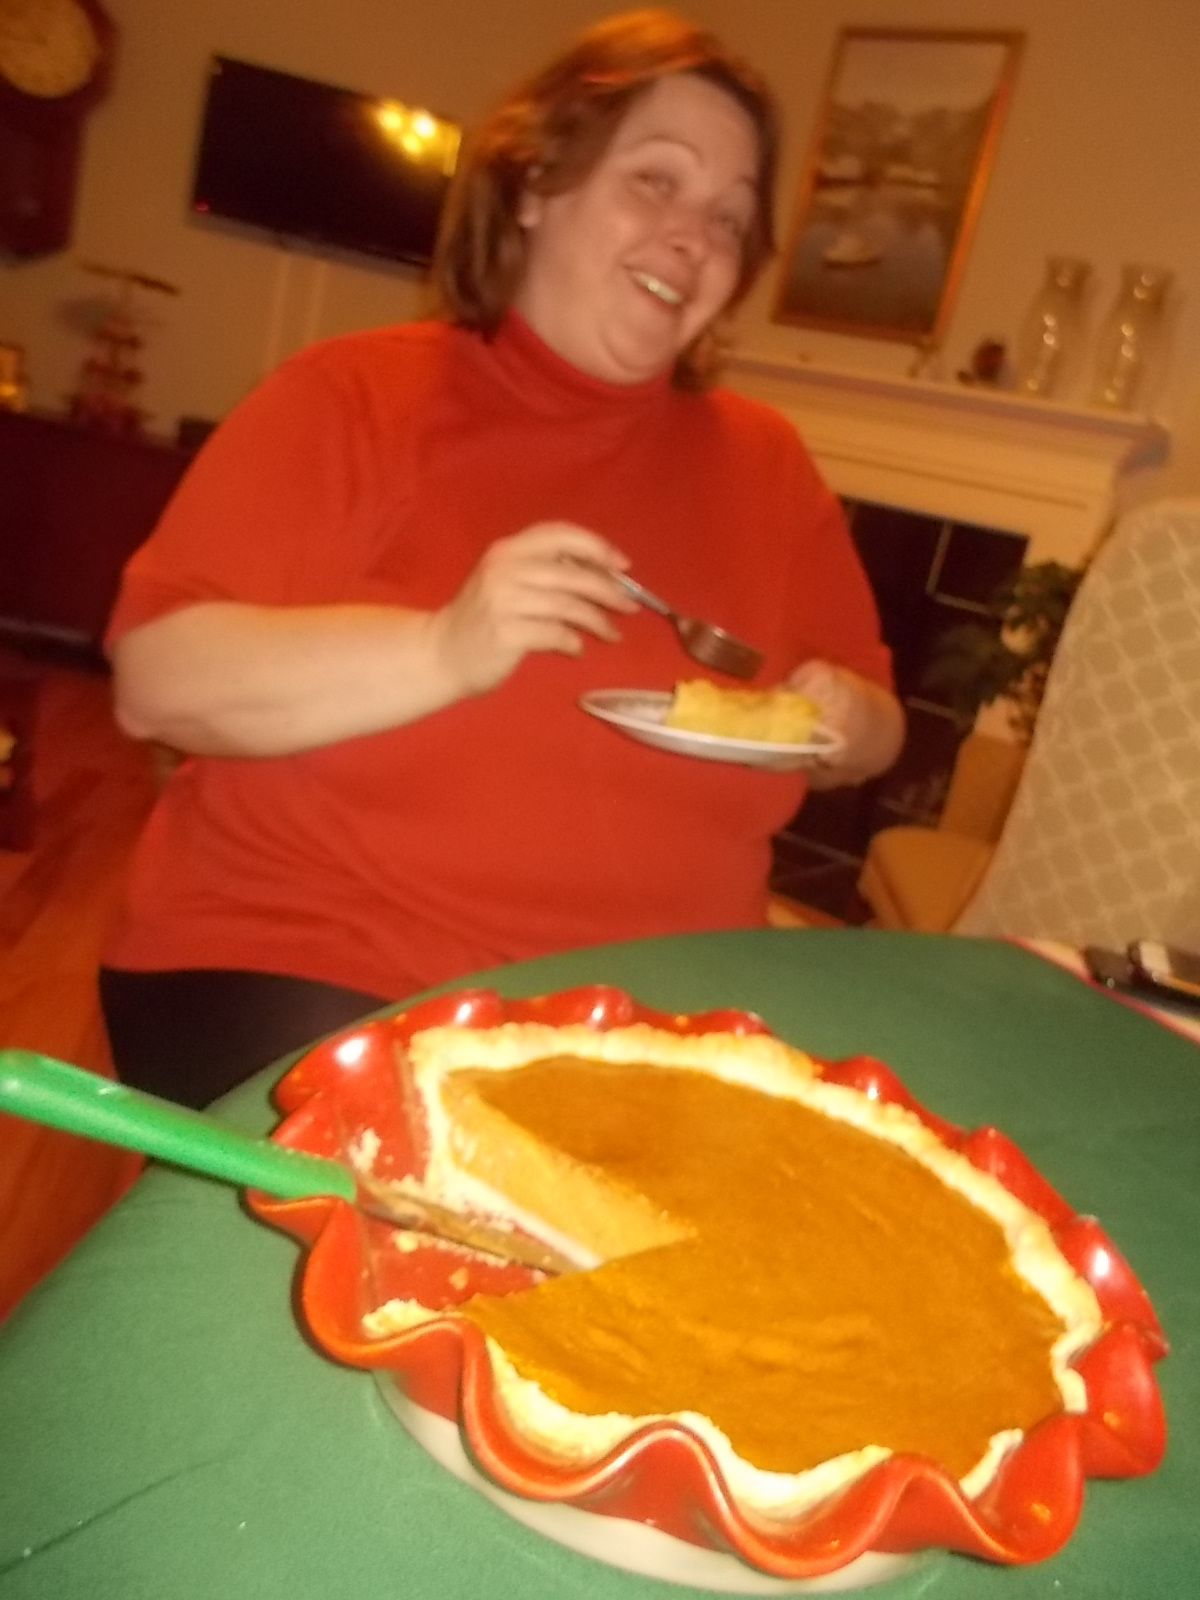 112616 Lise with her pie.JPG